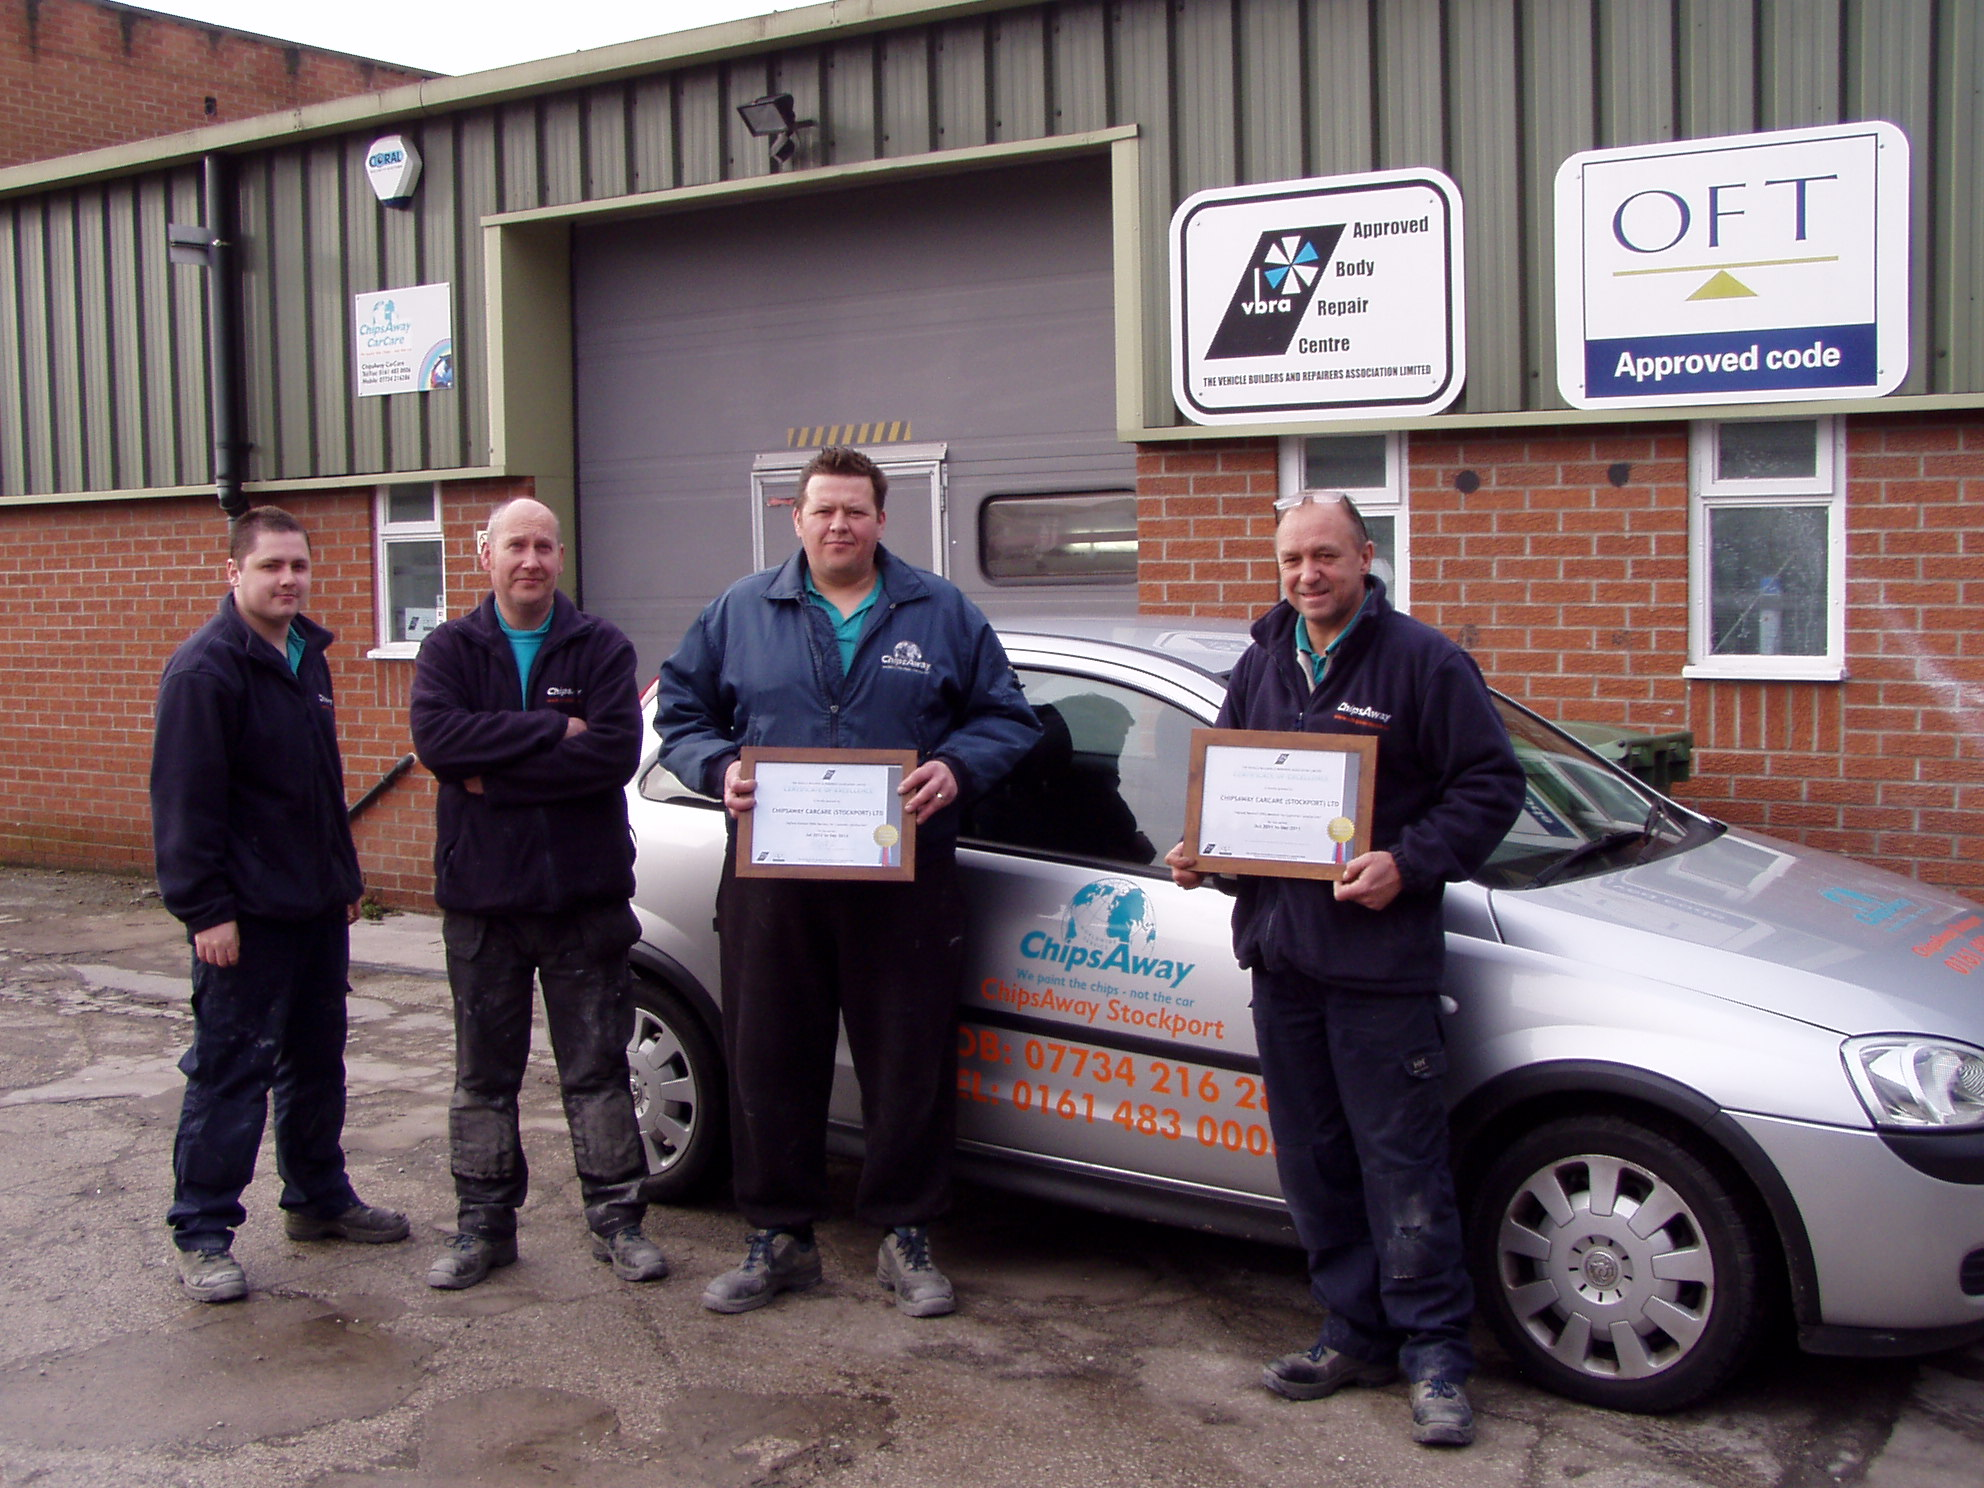 chipsaway_car_care_stockport_awarded_certificate_of_excellence_again.jpg